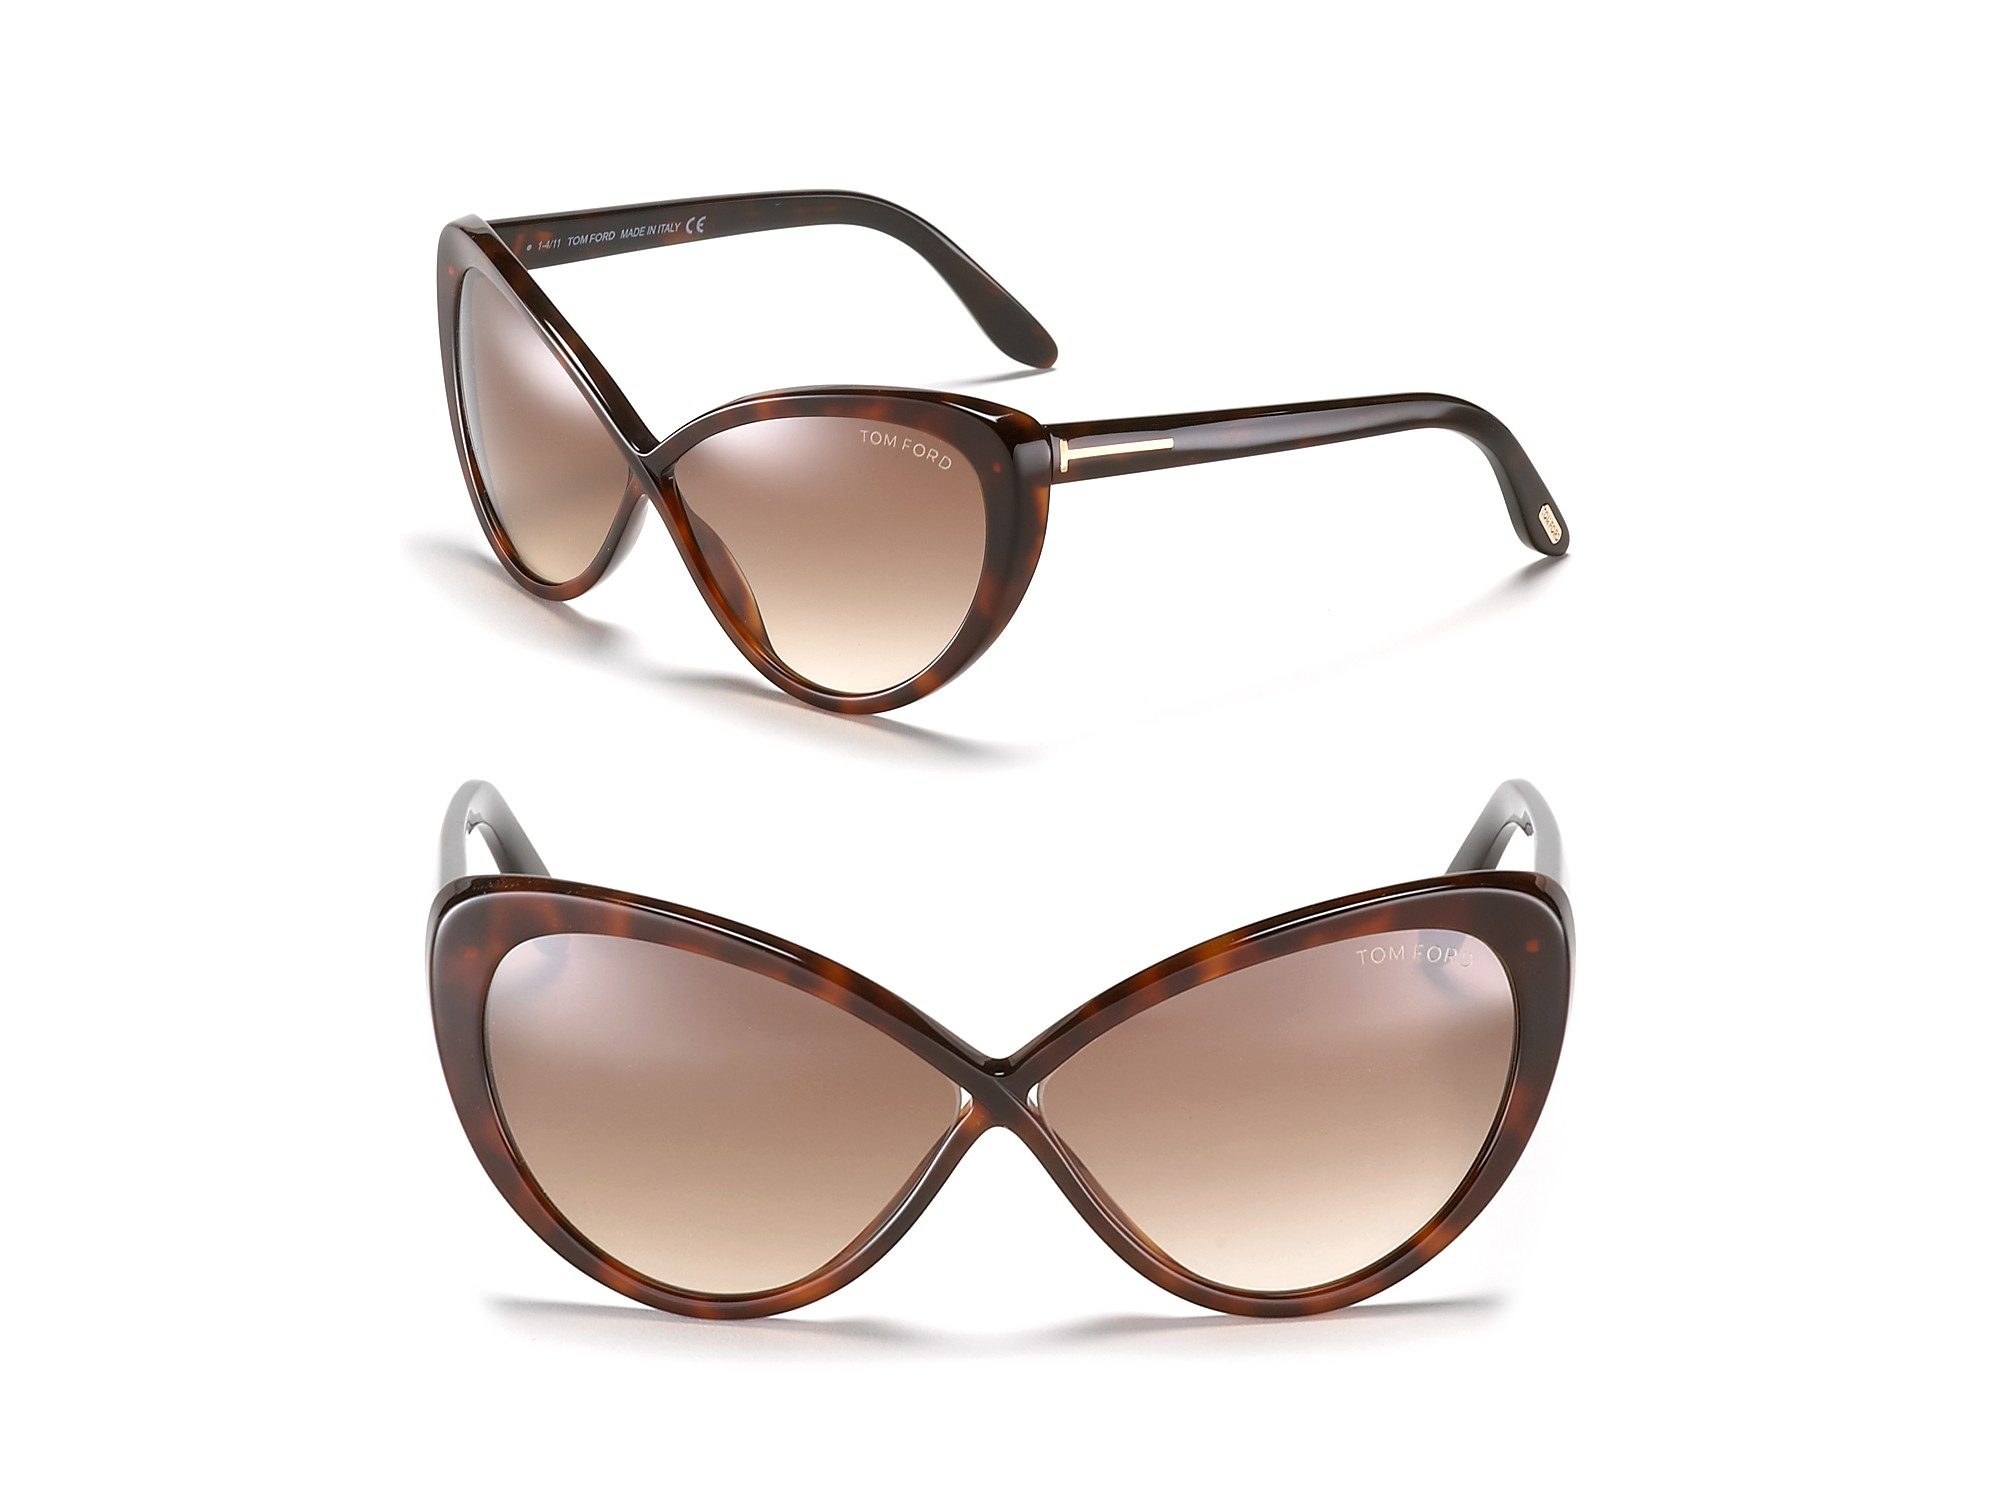 6a06edf44dce Gallery. Previously sold at  Bloomingdale s · Women s Cat Eye Sunglasses  Women s Tom Ford ...